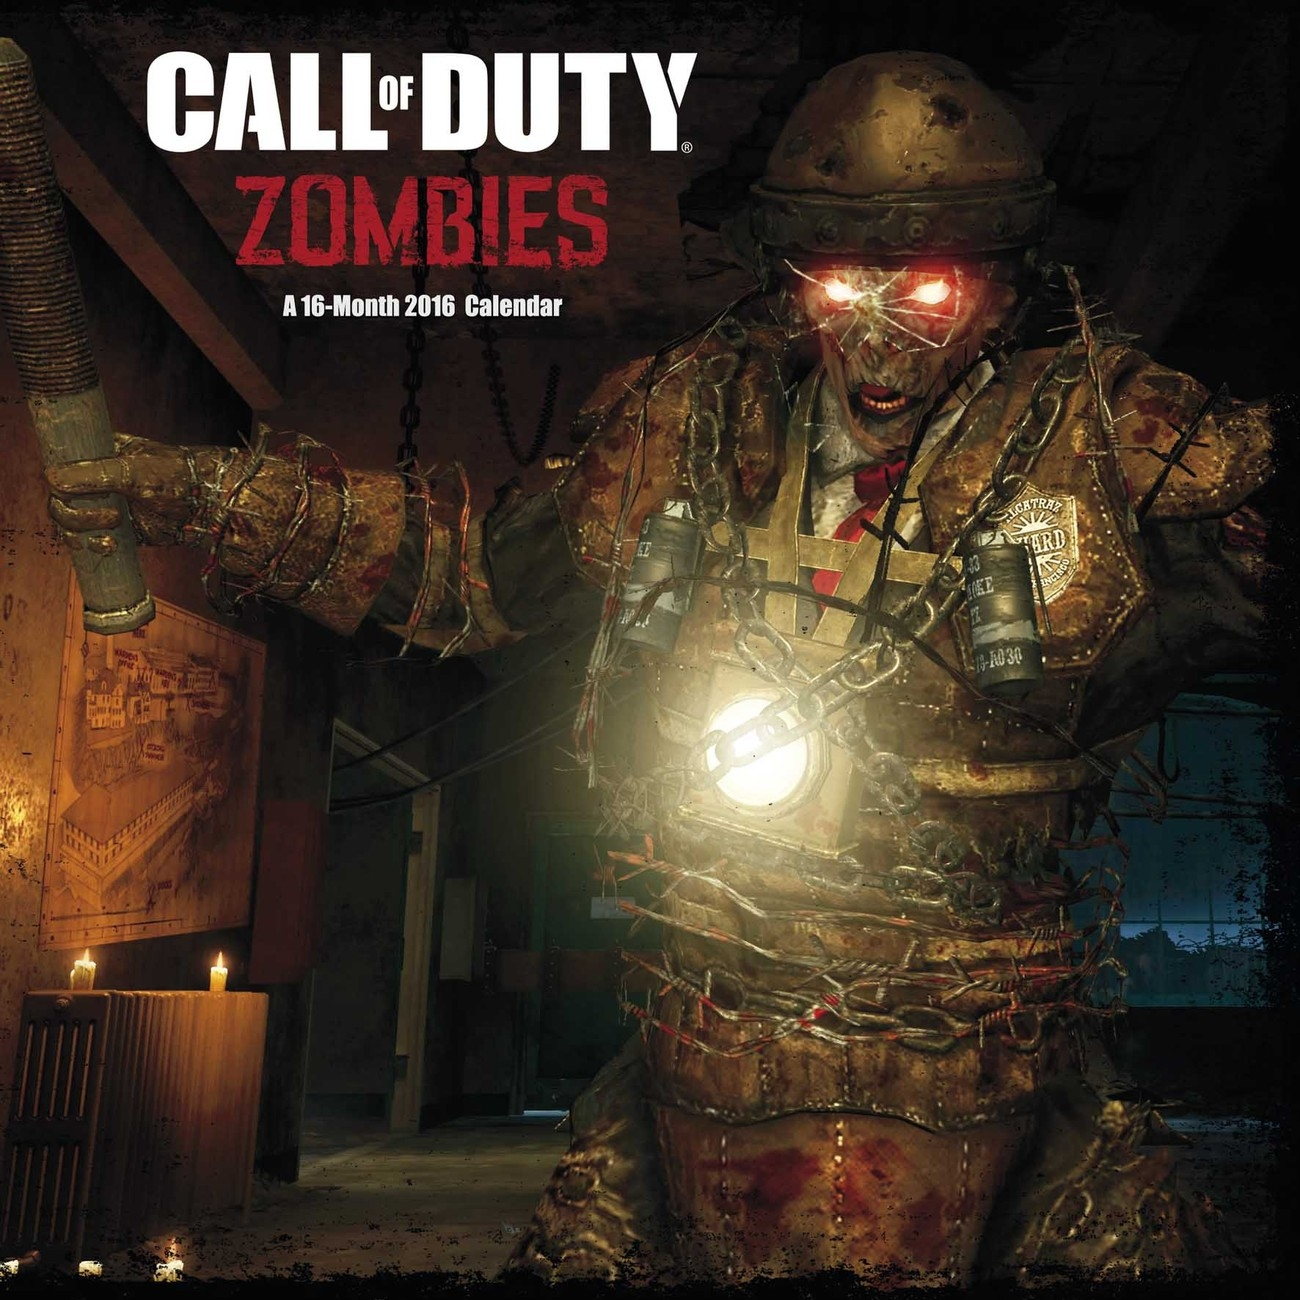 Call Of Duty Zombies Calendars 2018 On Europosters 89uj